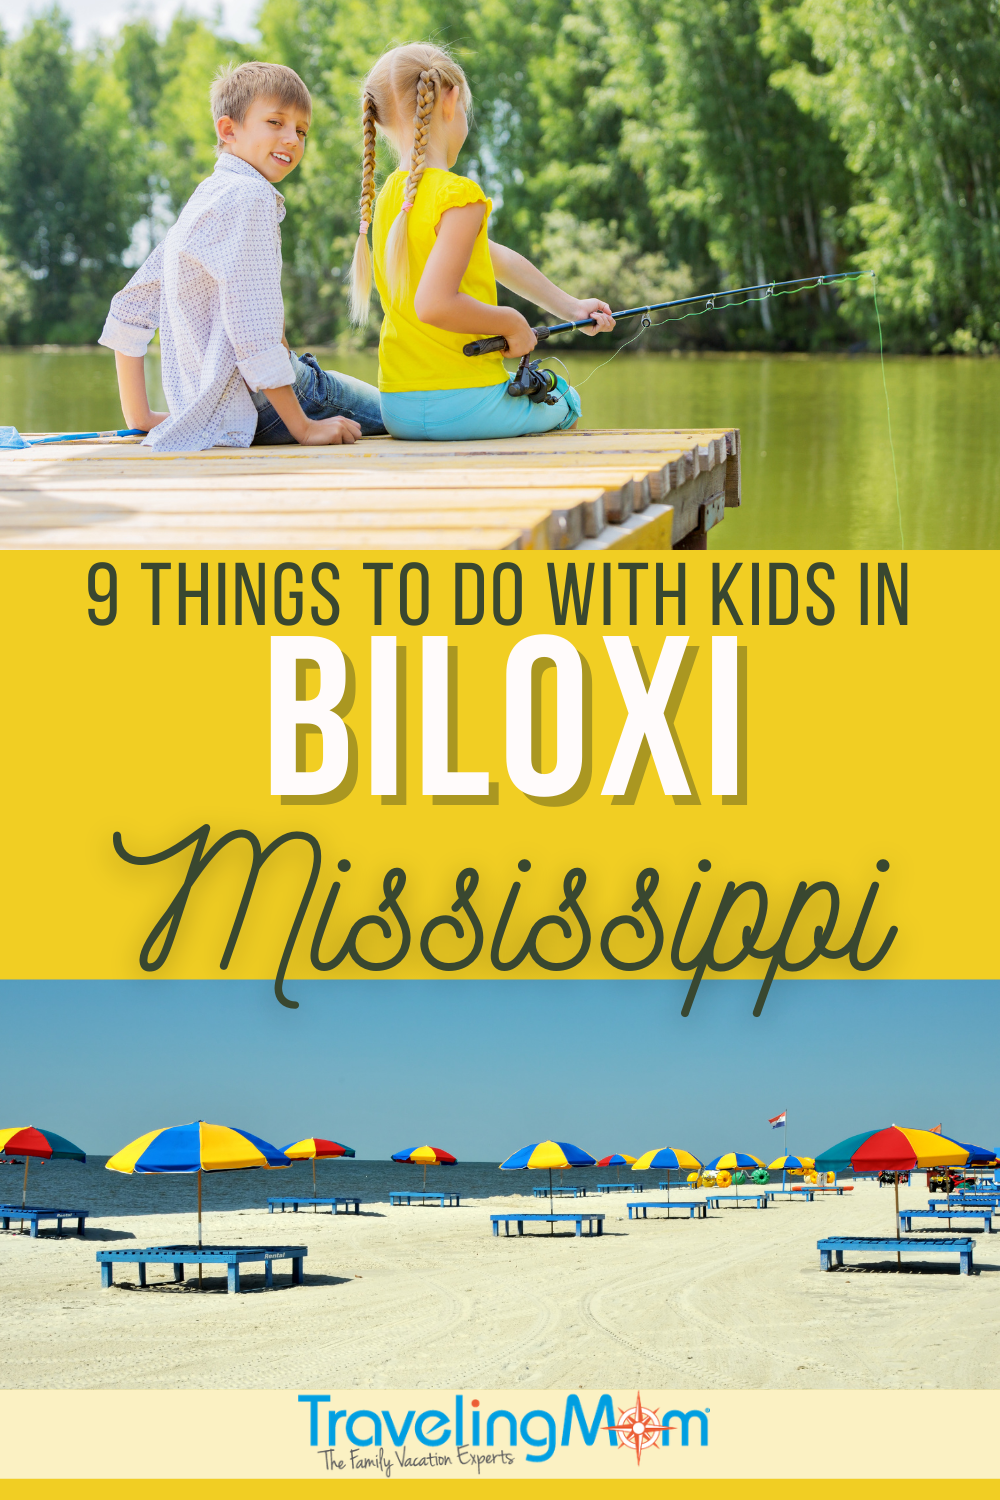 pin image with words 9 things to do with kids in biloxi mississippi top image of two kids sitting on a dock, bottom image of sandy beach with bright umbrellas